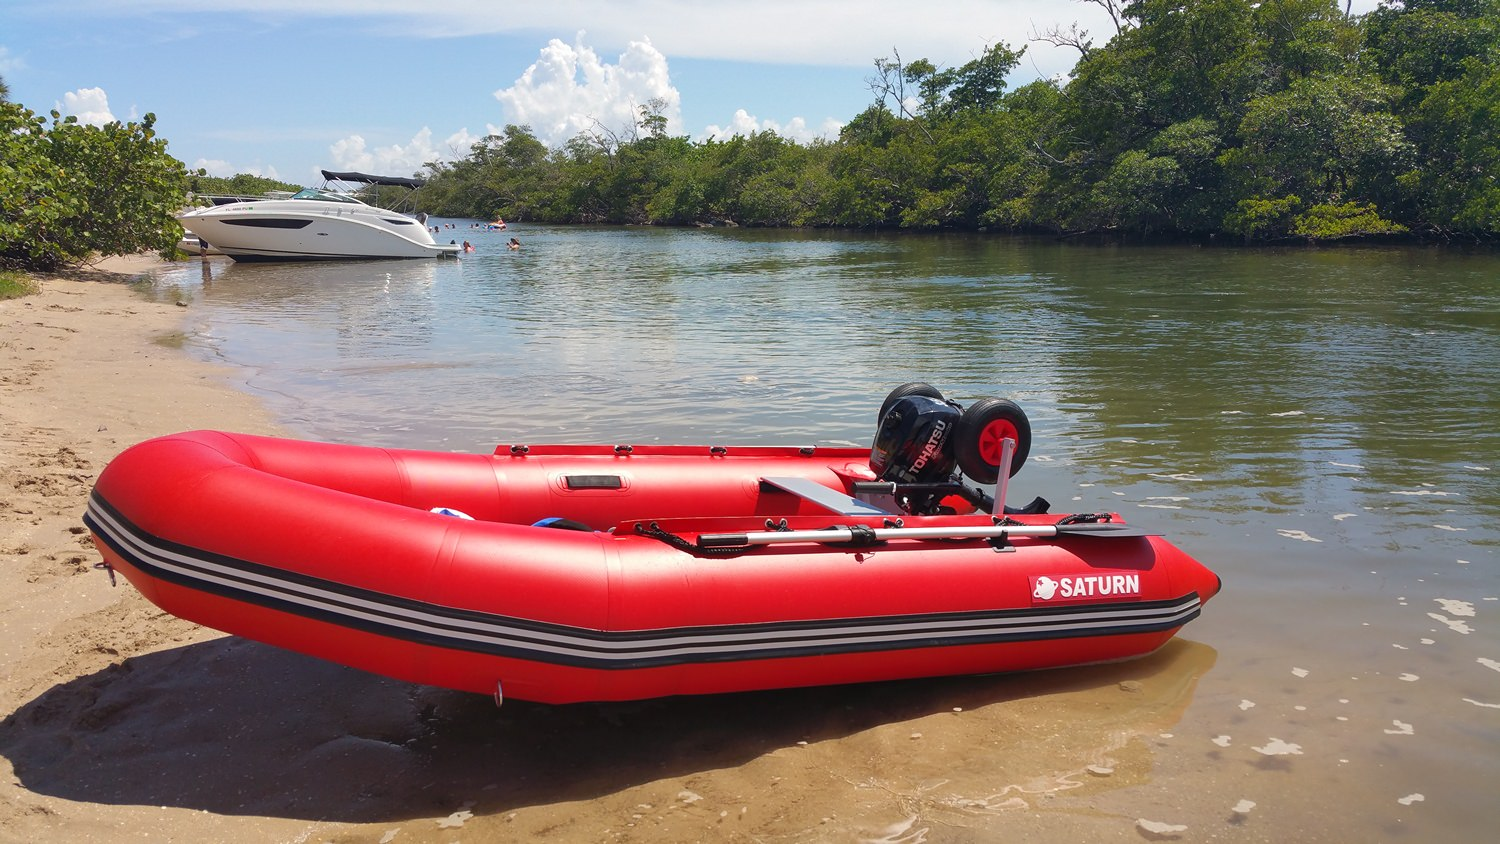 Inflatable motor boat saturn inflatable boats Best motor boats